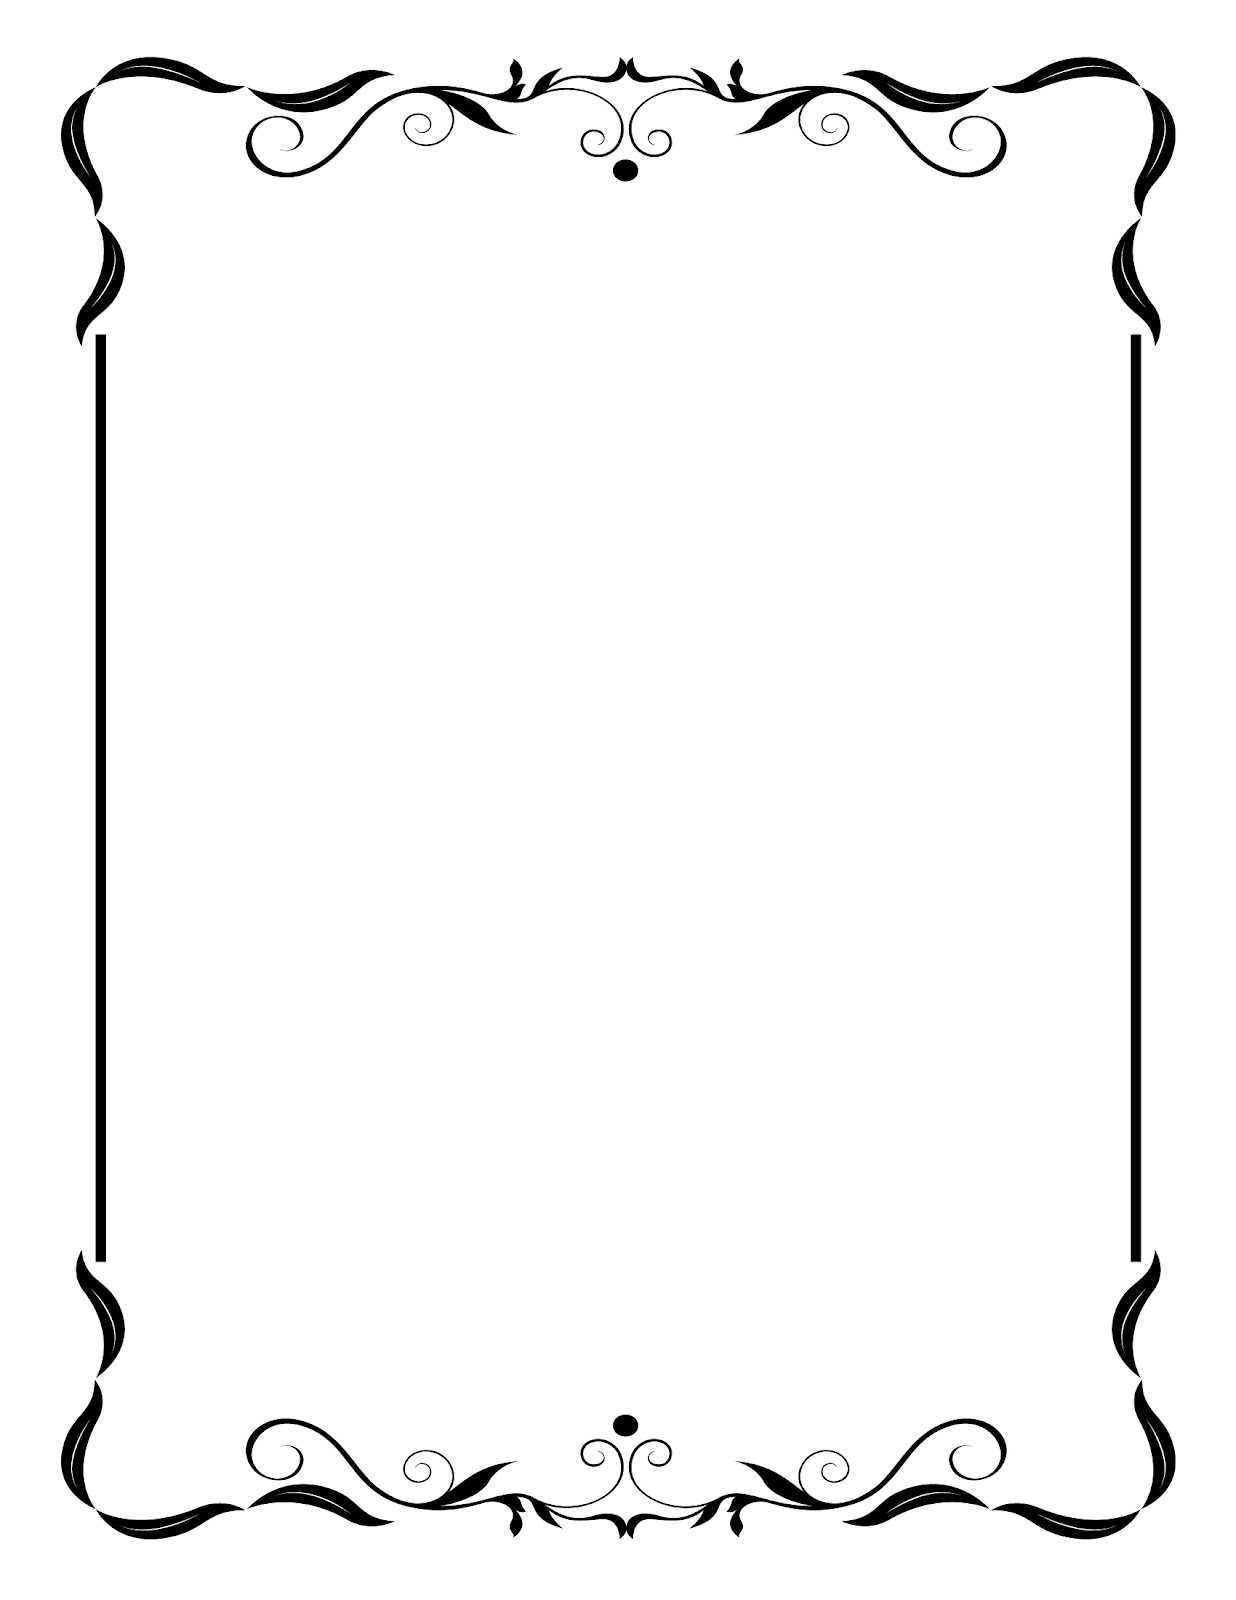 free printable birthday borders and frames ; border-frames-clipart-12